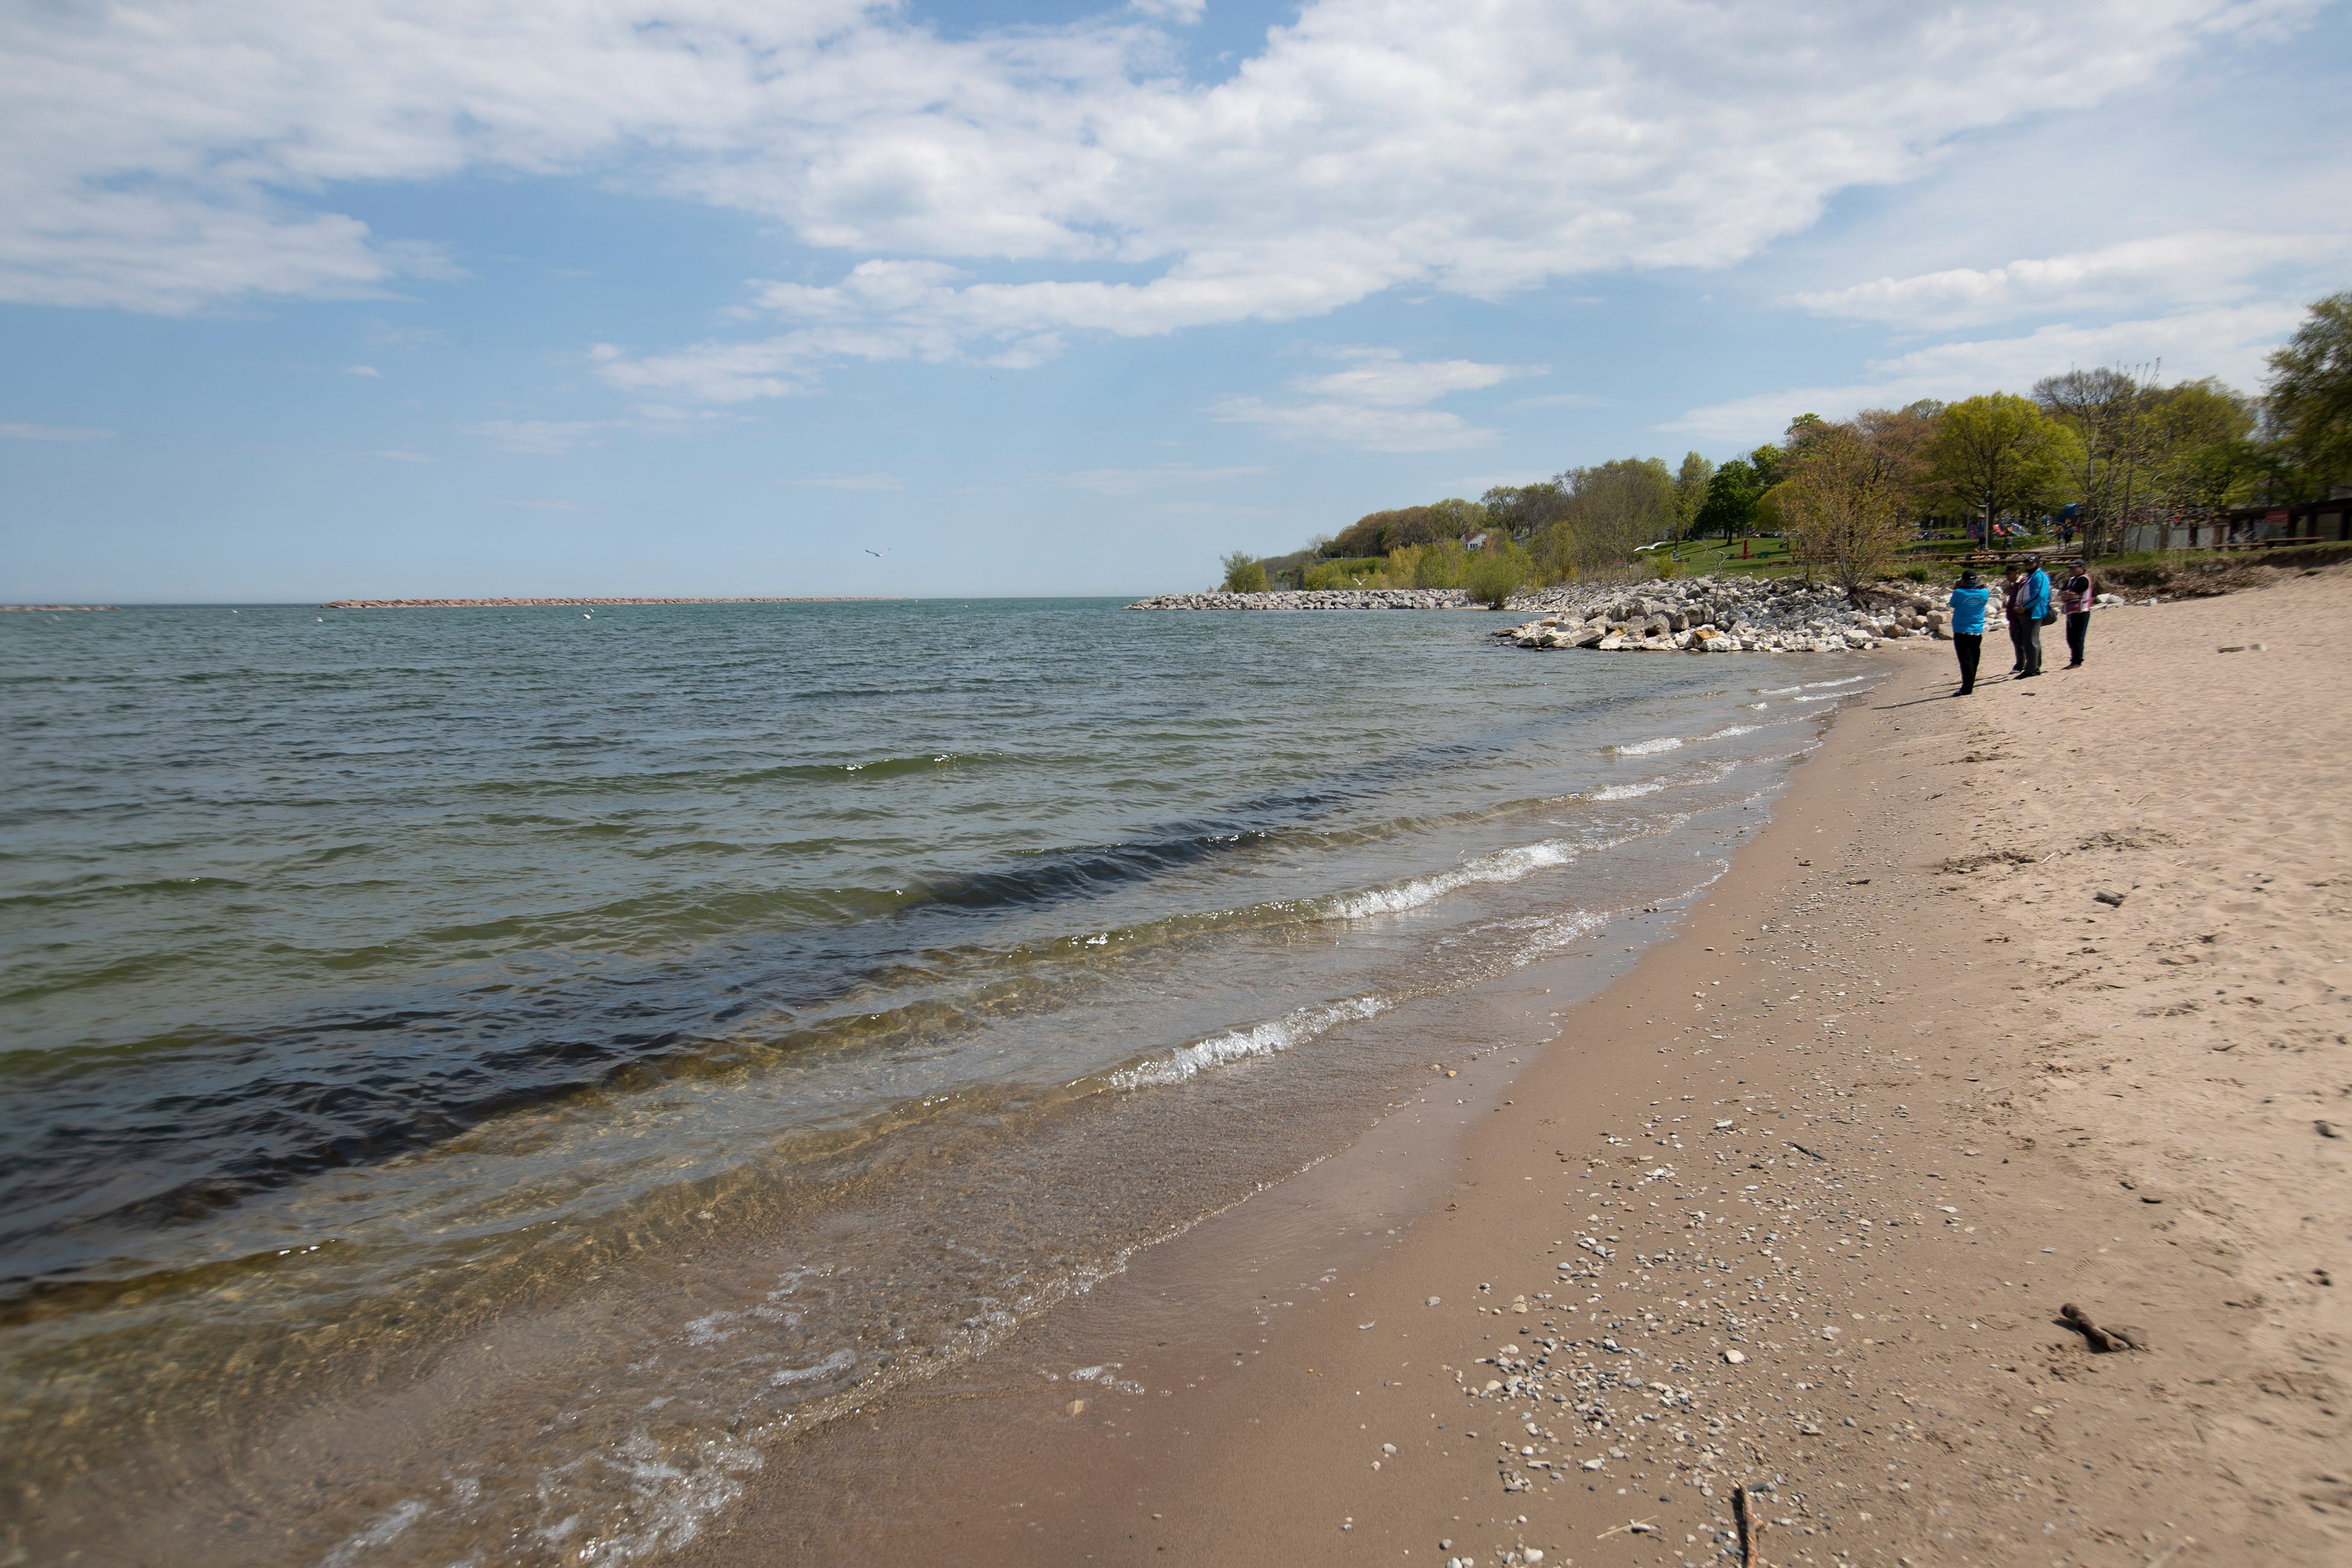 Water levels drop in Great Lakes after record-breaking highs in 2020